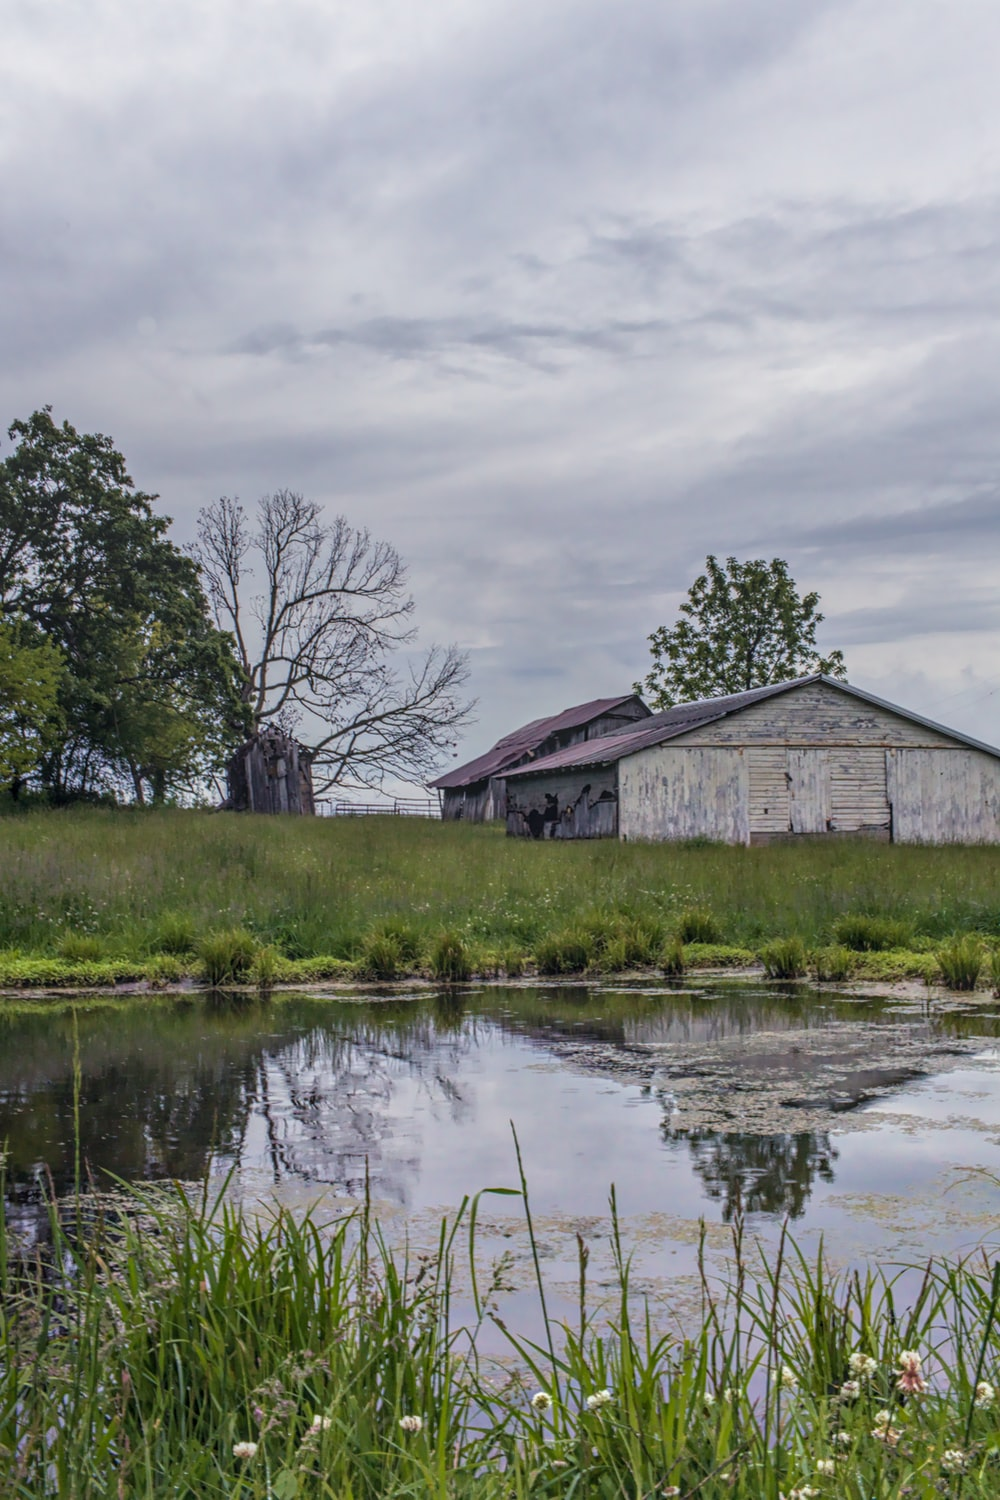 brown wooden house near lake under cloudy sky during daytime